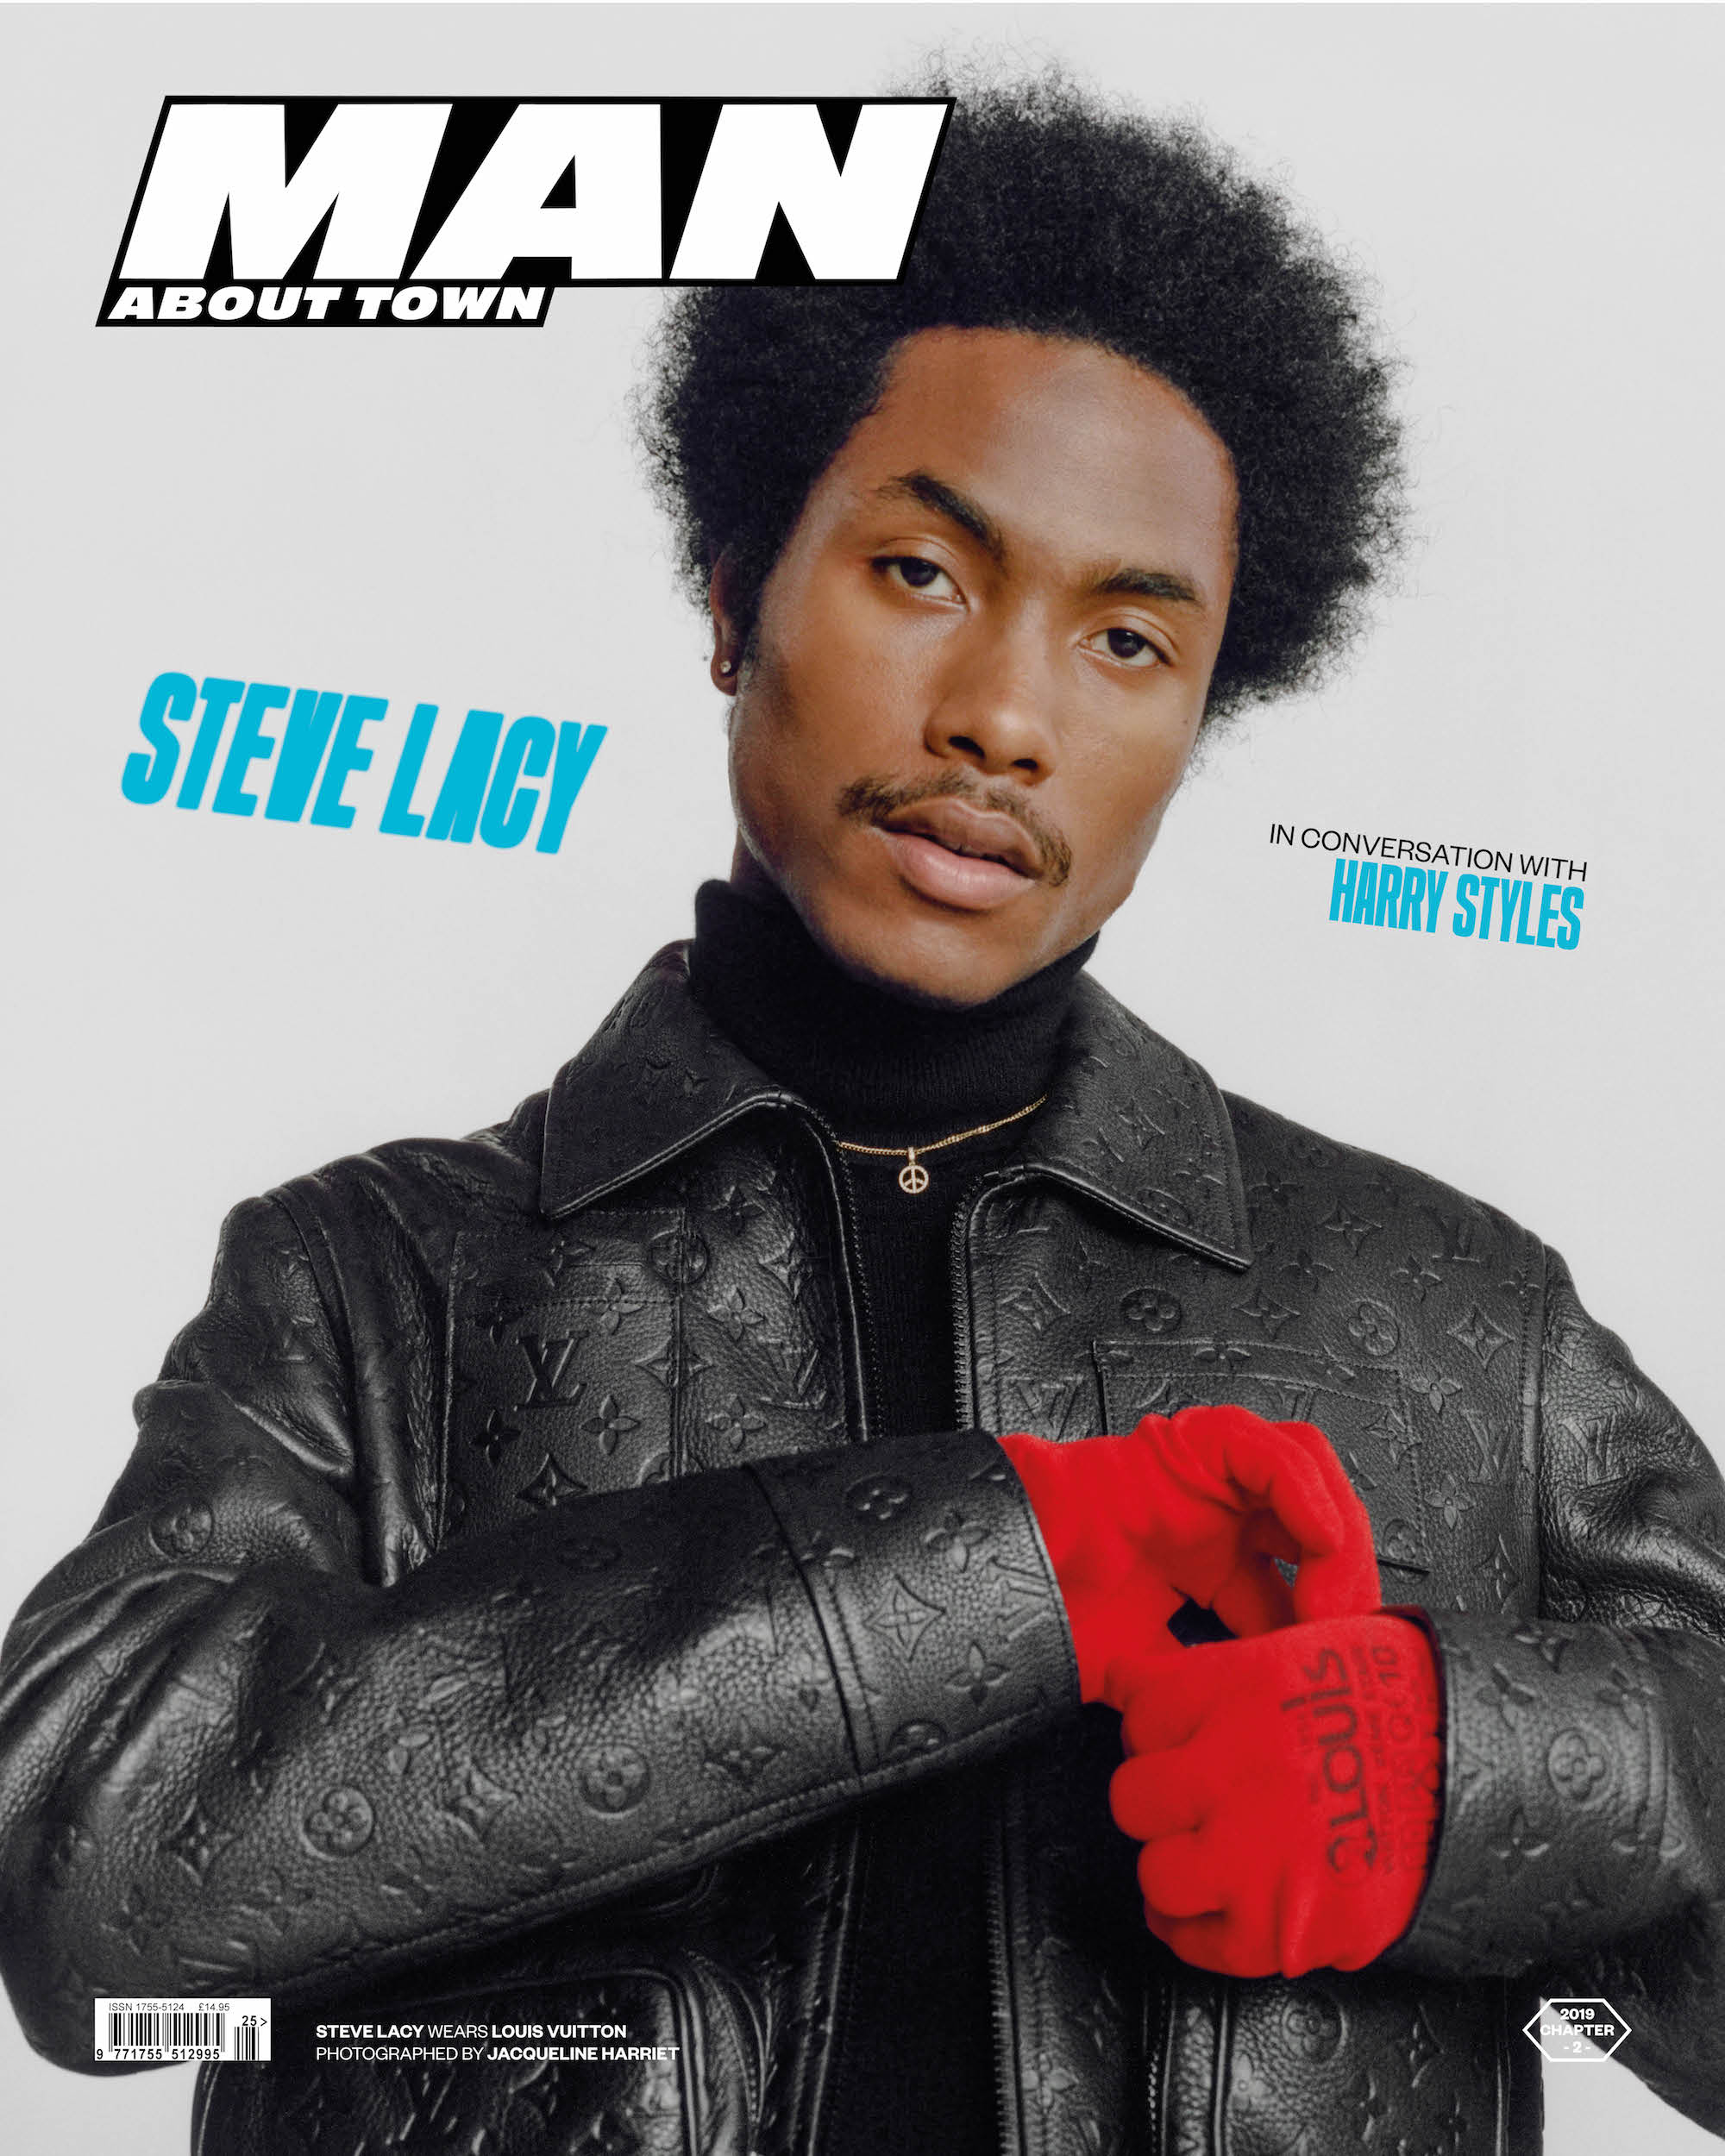 STEVE LACY interviewed by HARRY STYLES covers Man About Town: 2019, Chapter II cover